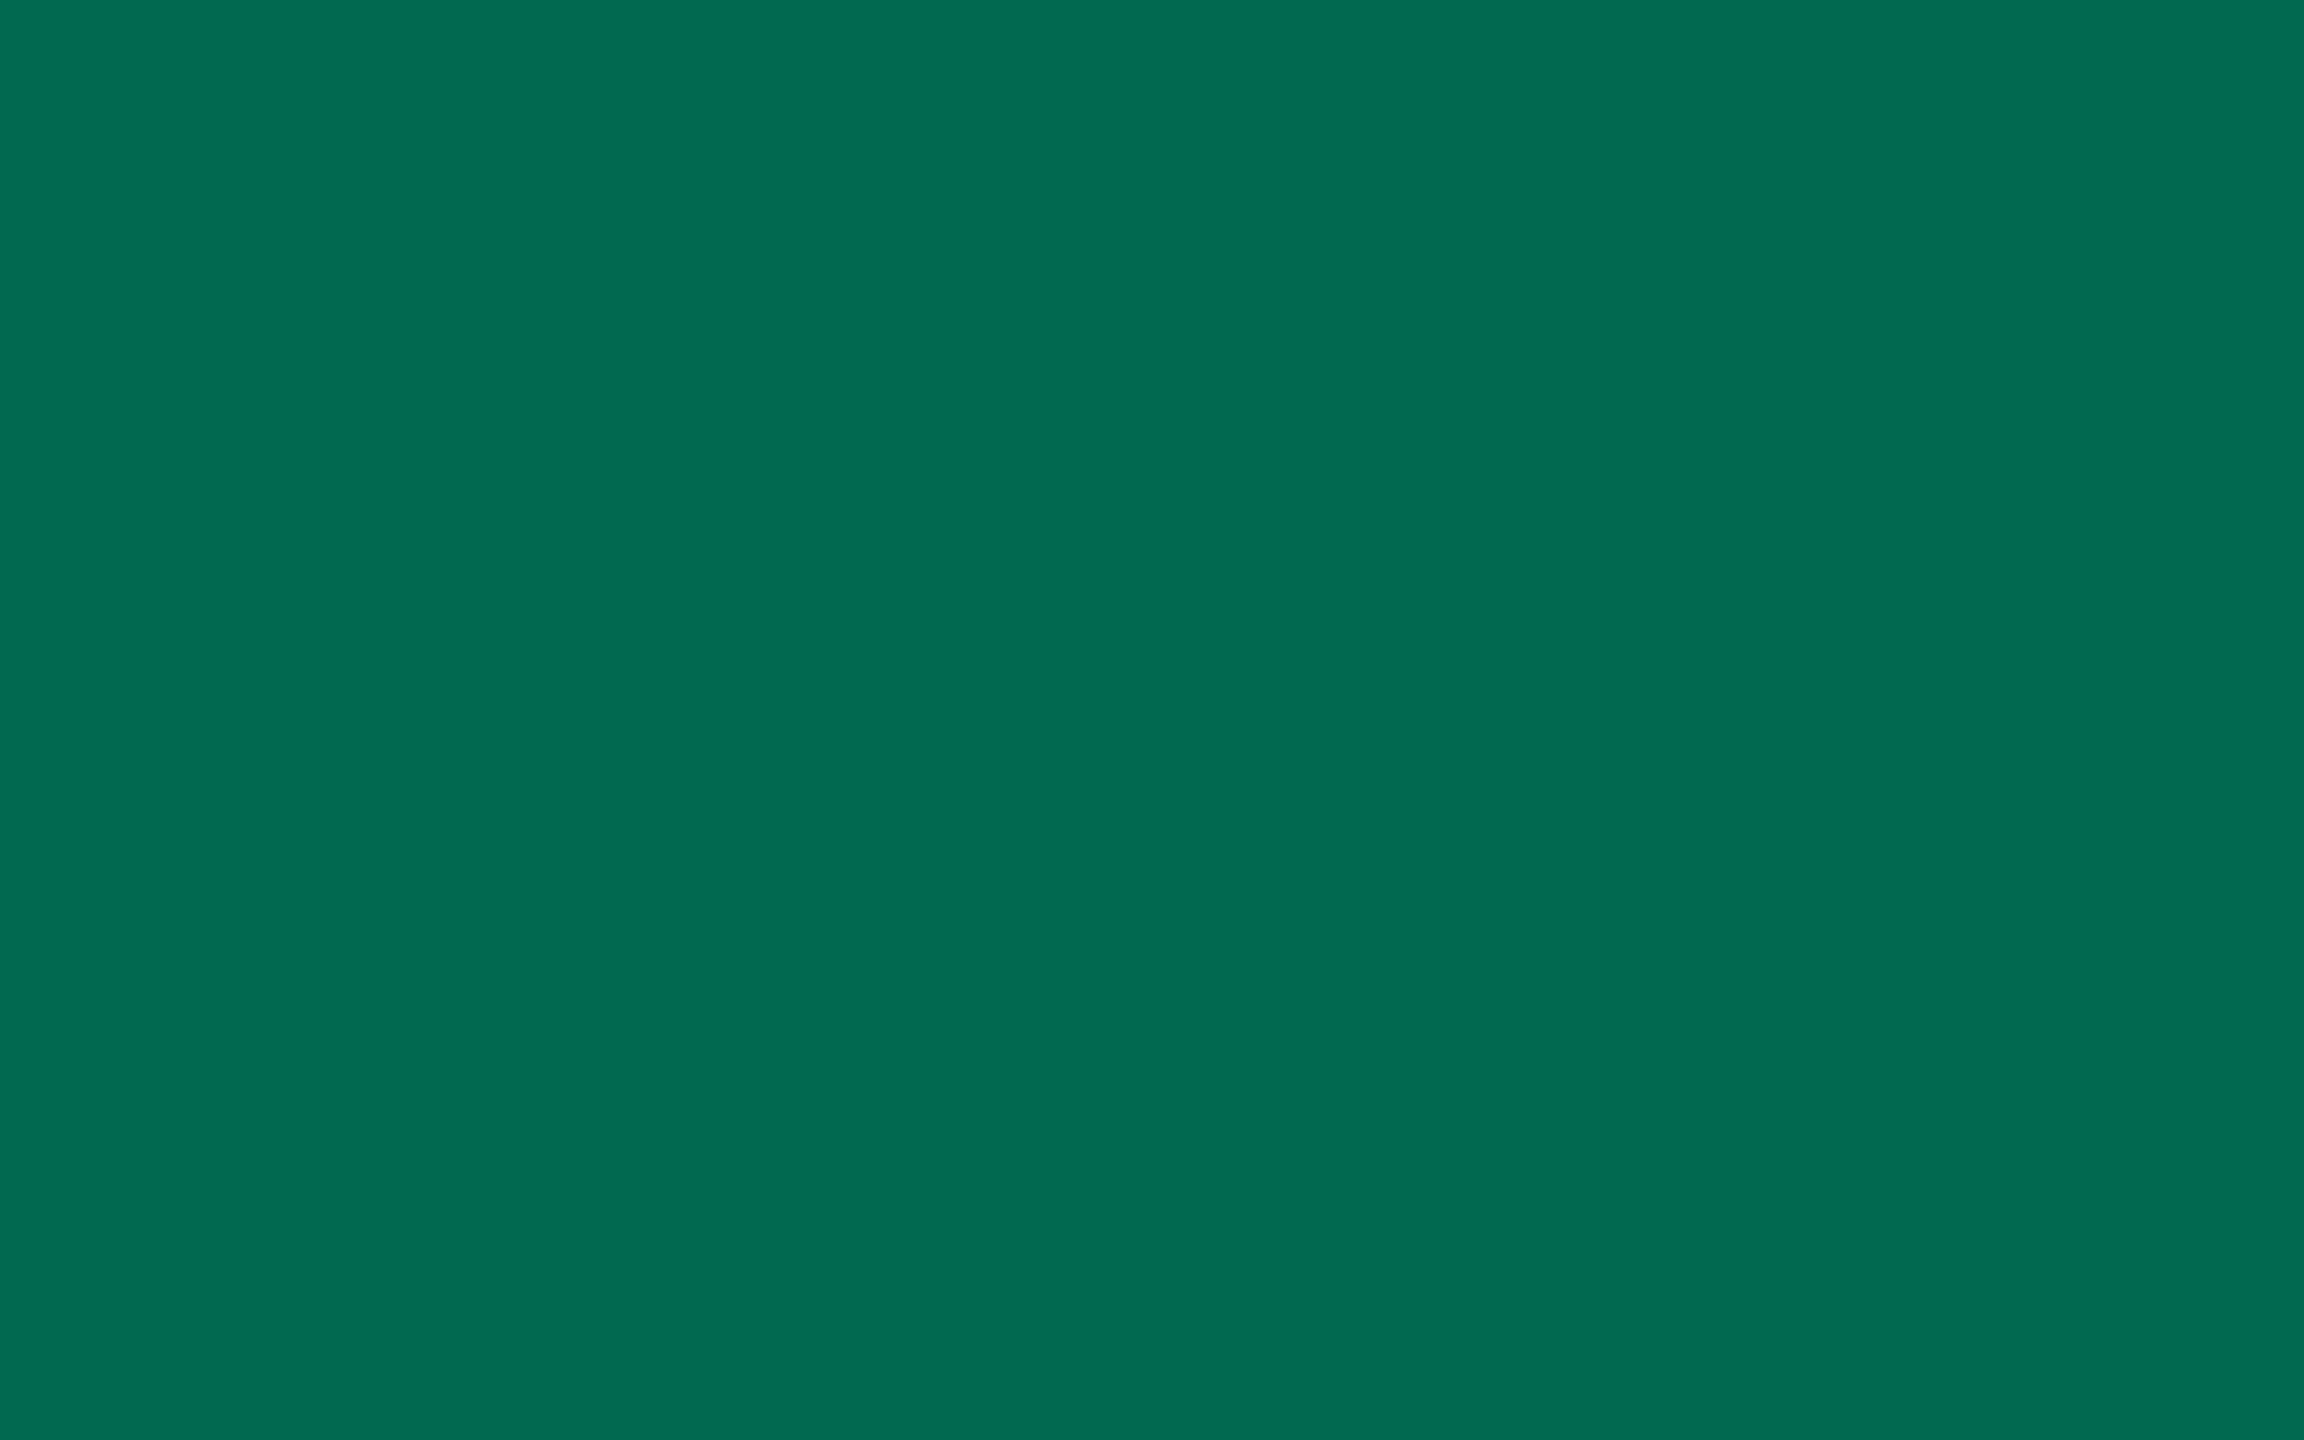 2304x1440 Bottle Green Solid Color Background